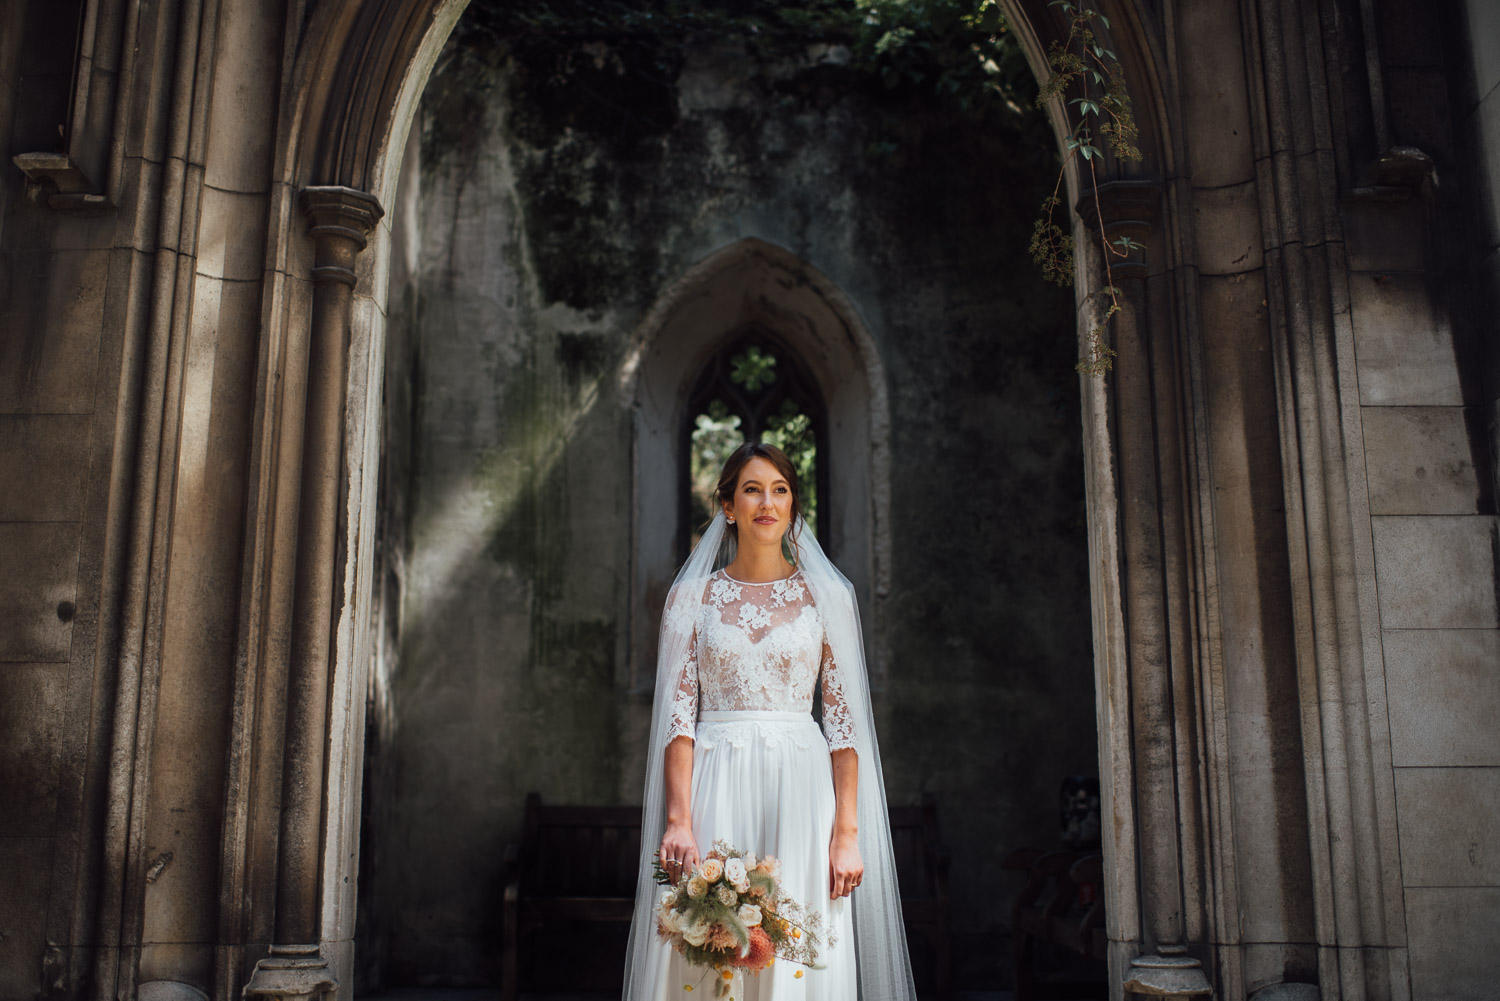 margaux tardits wedding dress wilton's music hall wedding by london wedding photographer the shannons photography